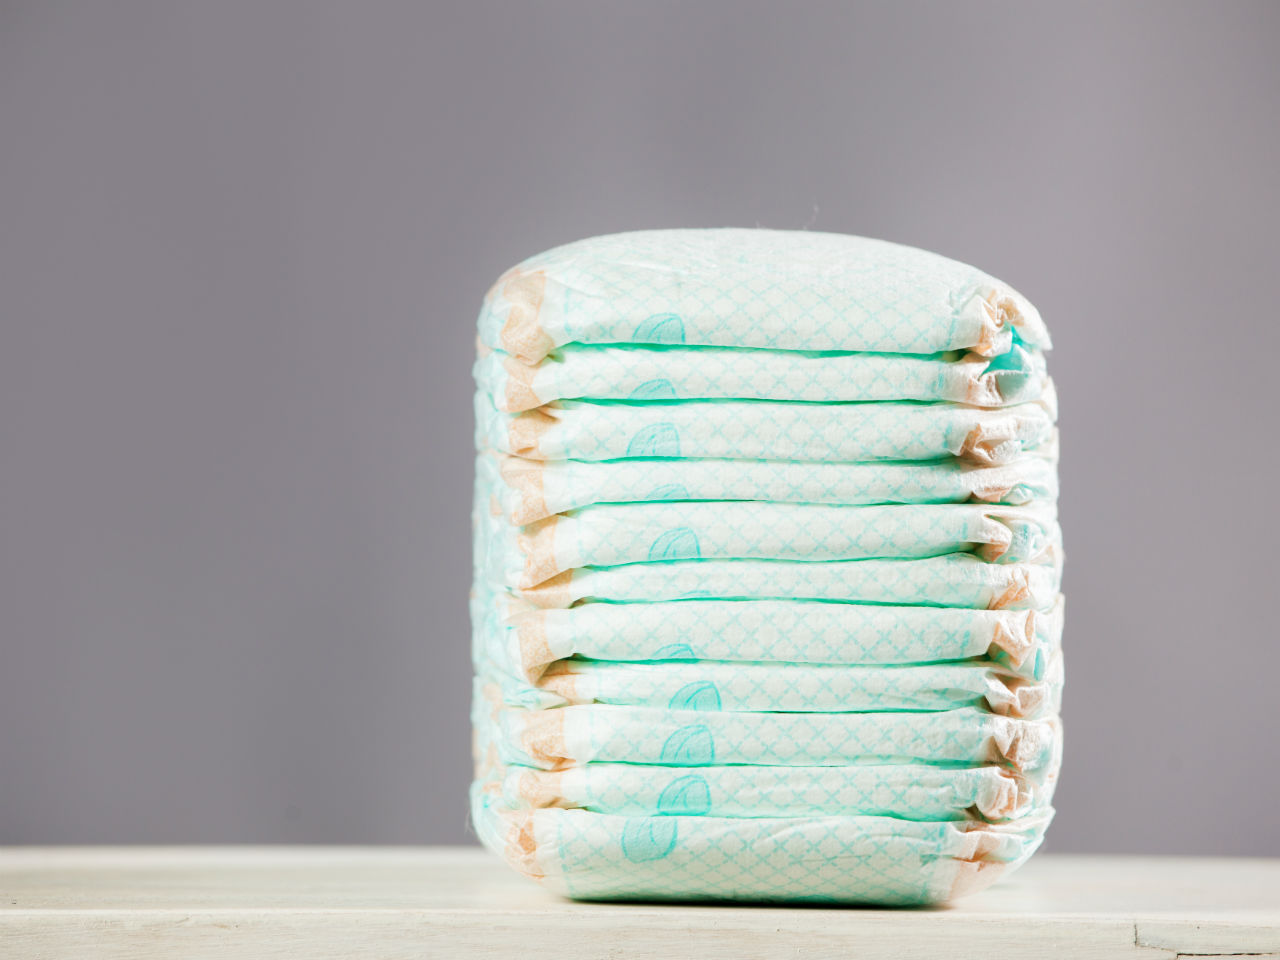 Disposable diaper delivery subscription